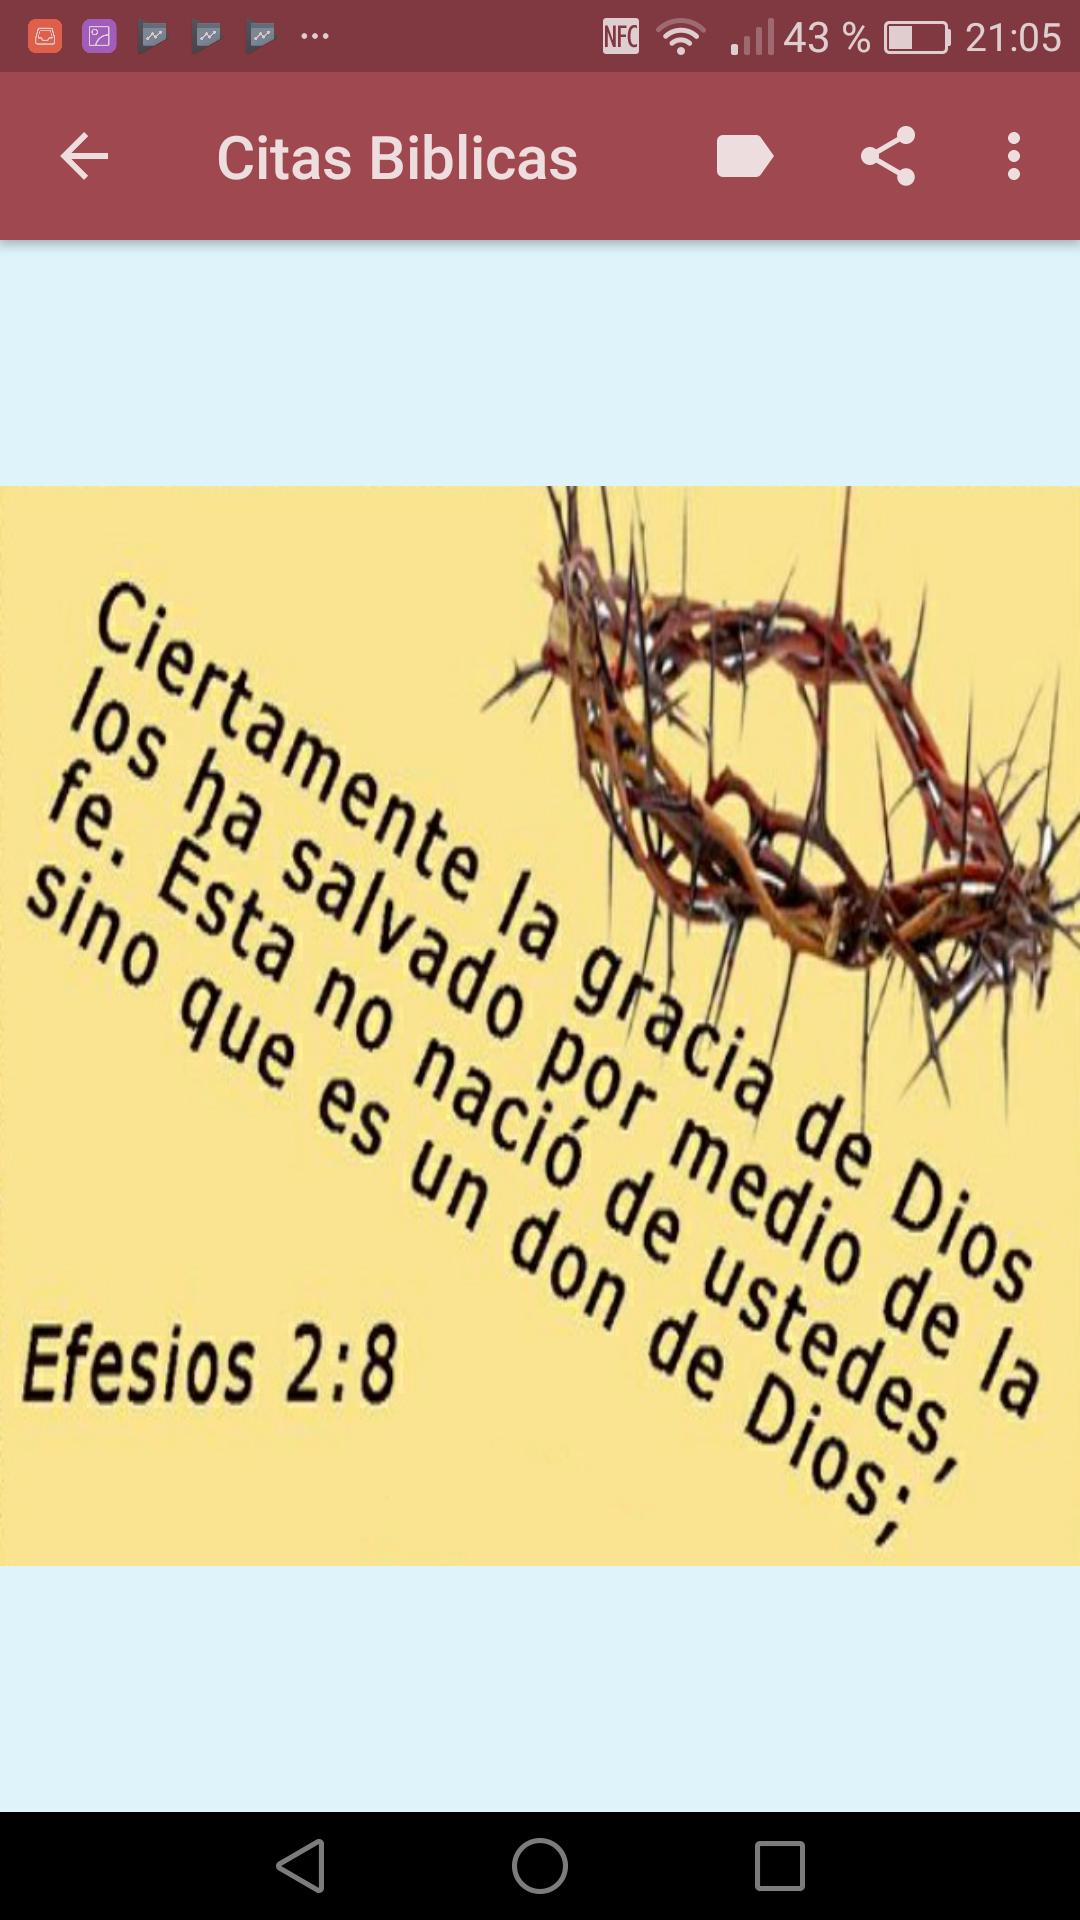 Proverbios Salmos Y Citas Biblicas For Android Apk Download